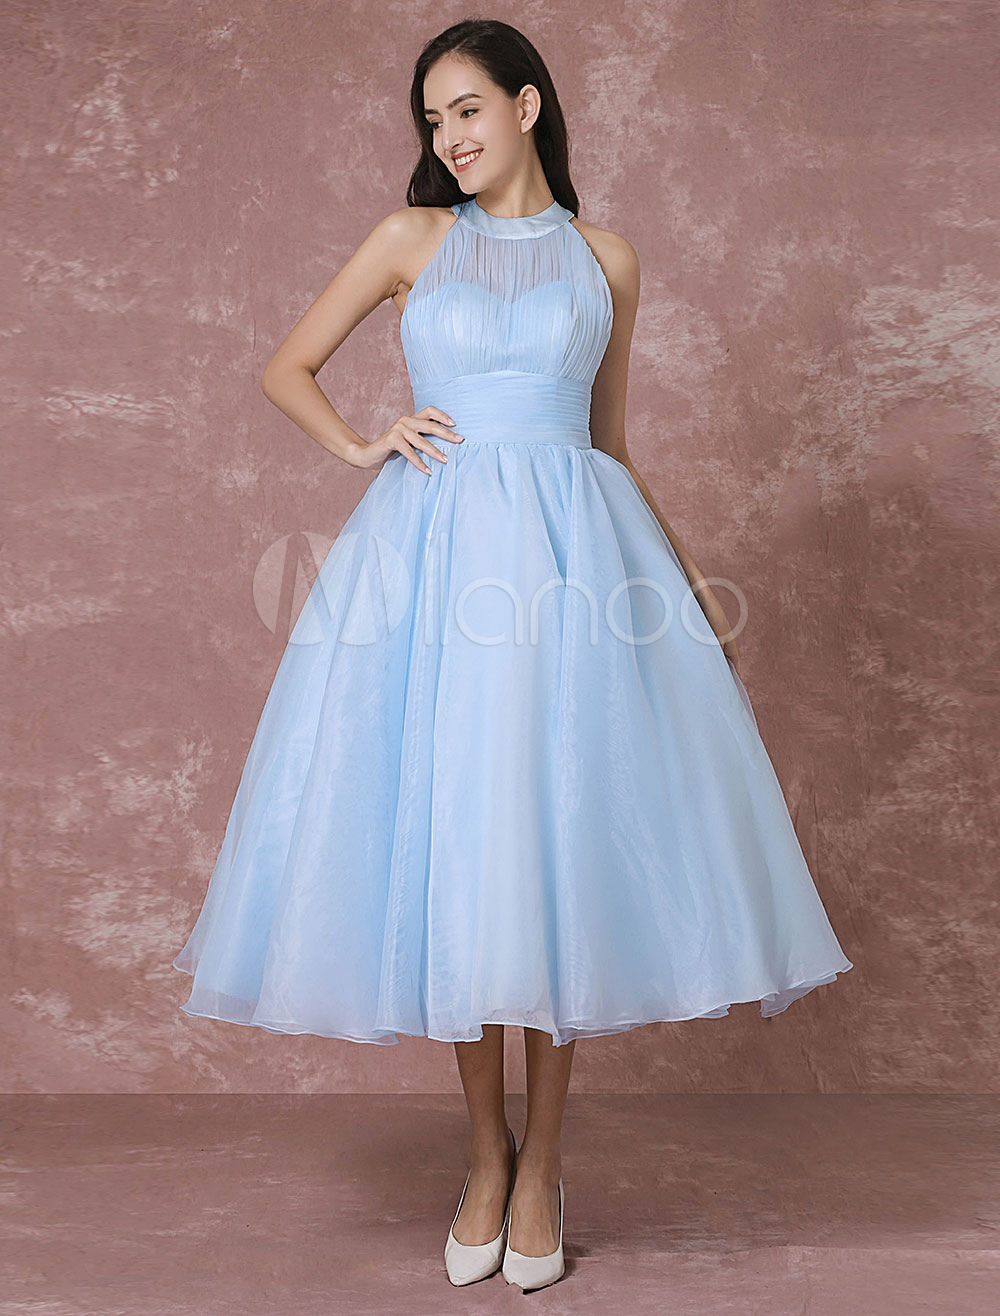 Blue Wedding Dress Short Tulle Vintage Bridal